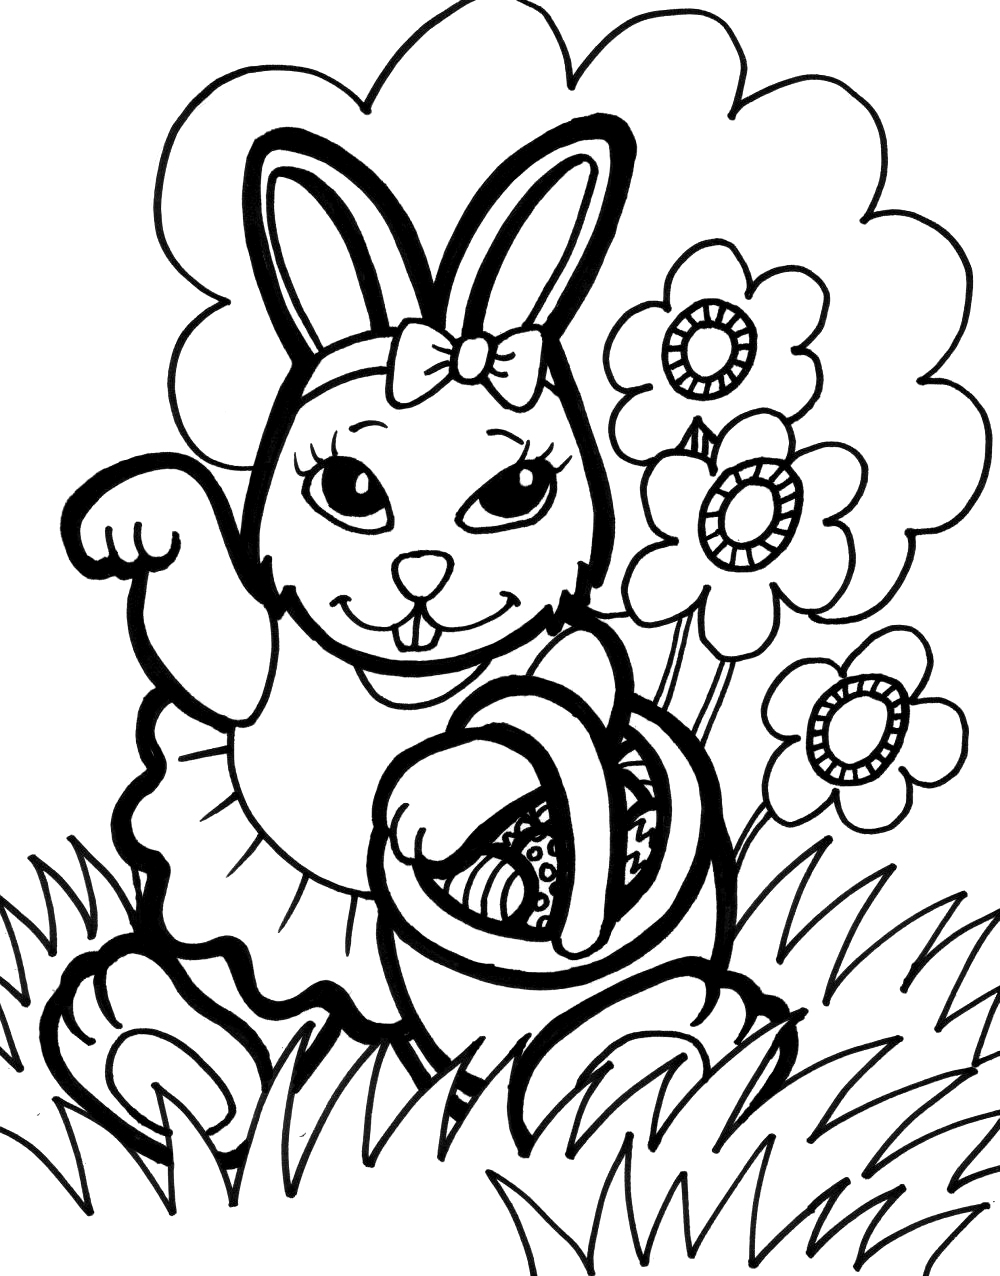 bunny pictures to color 9 bunny coloring pages to color pictures bunny